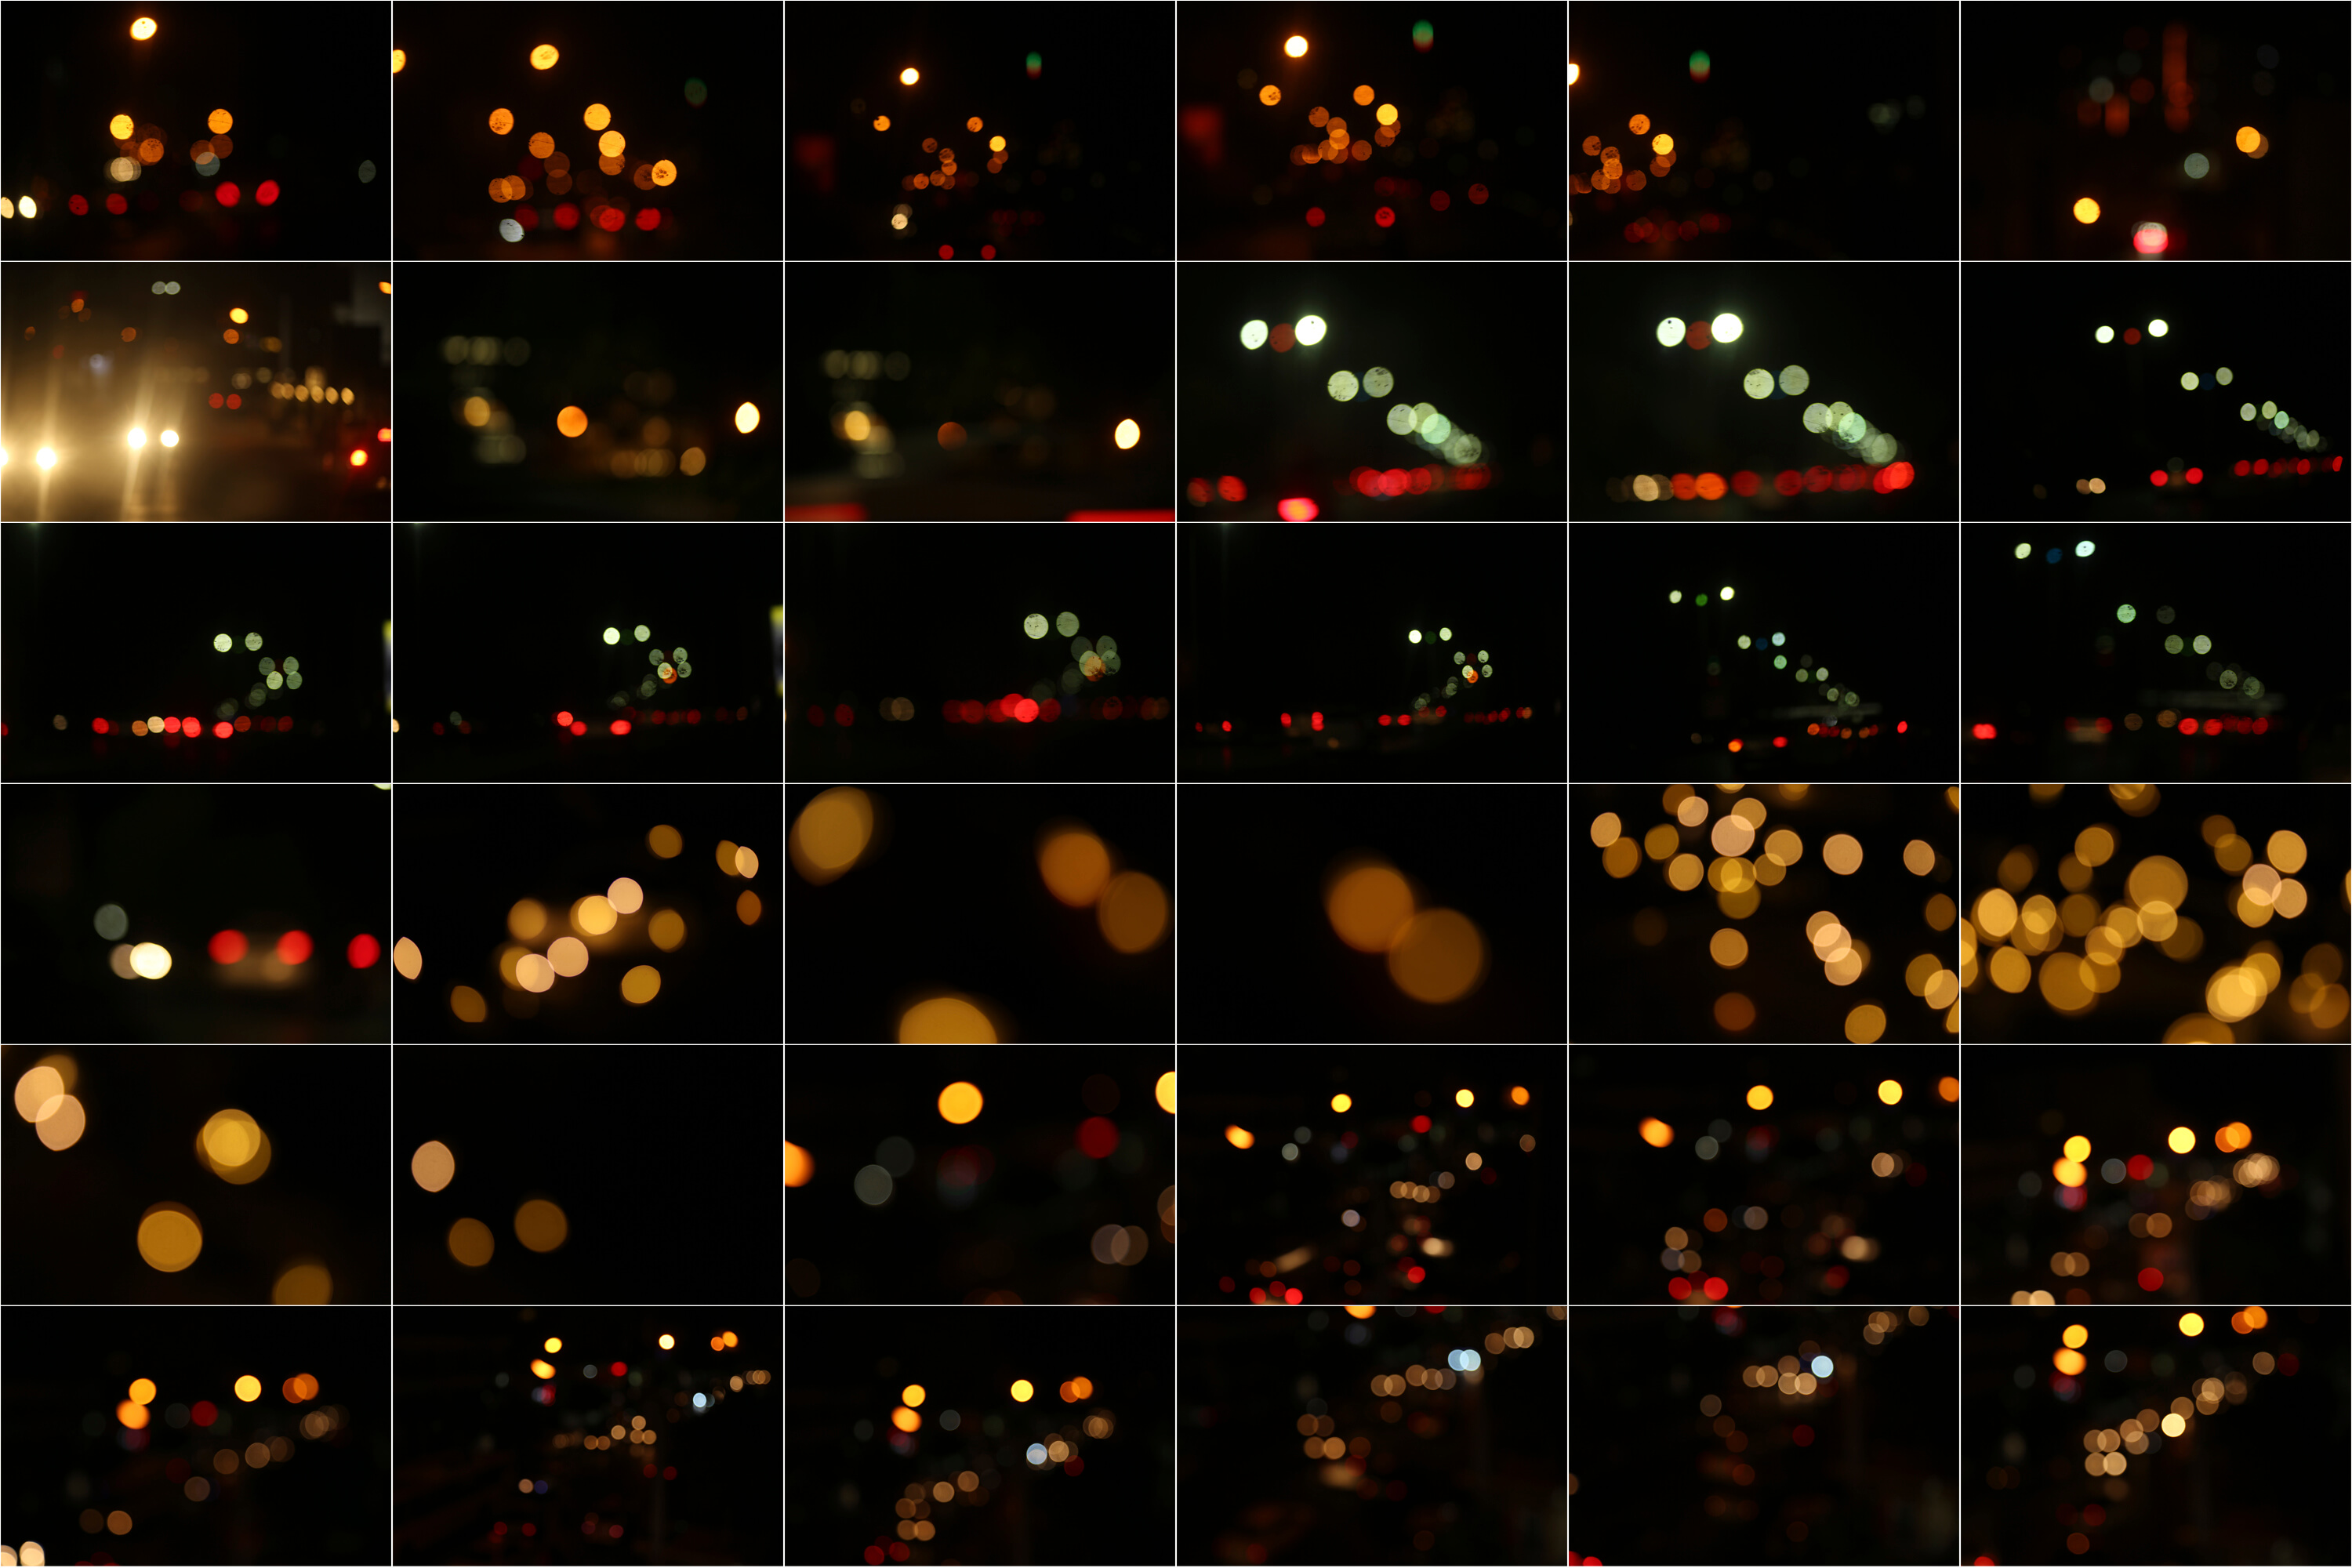 80 Life Style Bokeh Pack 02 lights Effect Photo Overlays example image 8